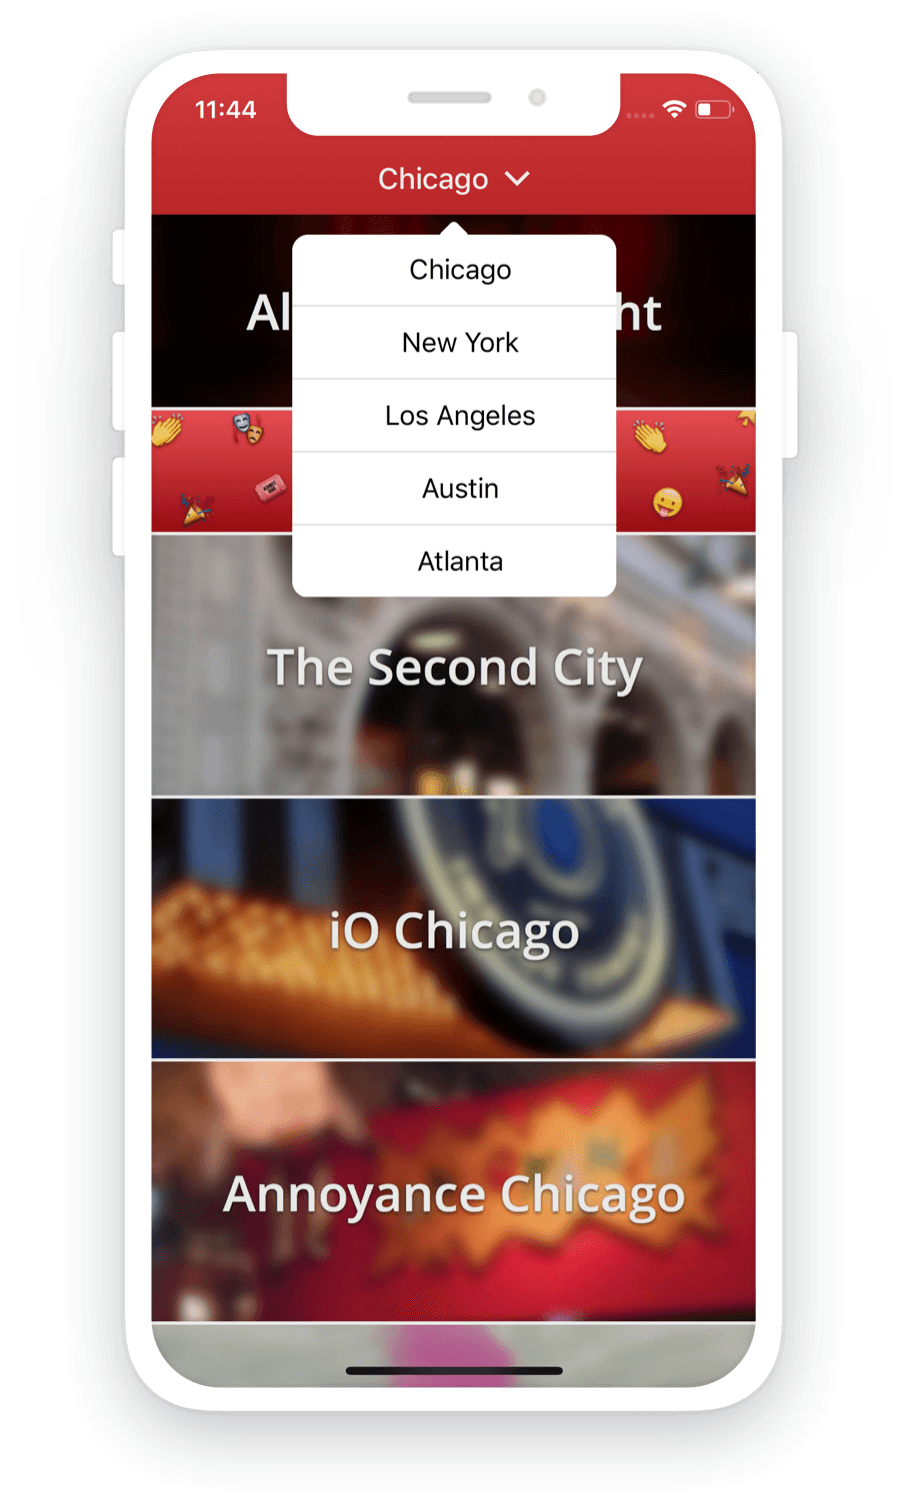 Improv Tonight app - City Select for Chicago, New York, Los Angeles, Austin, and Atlanta